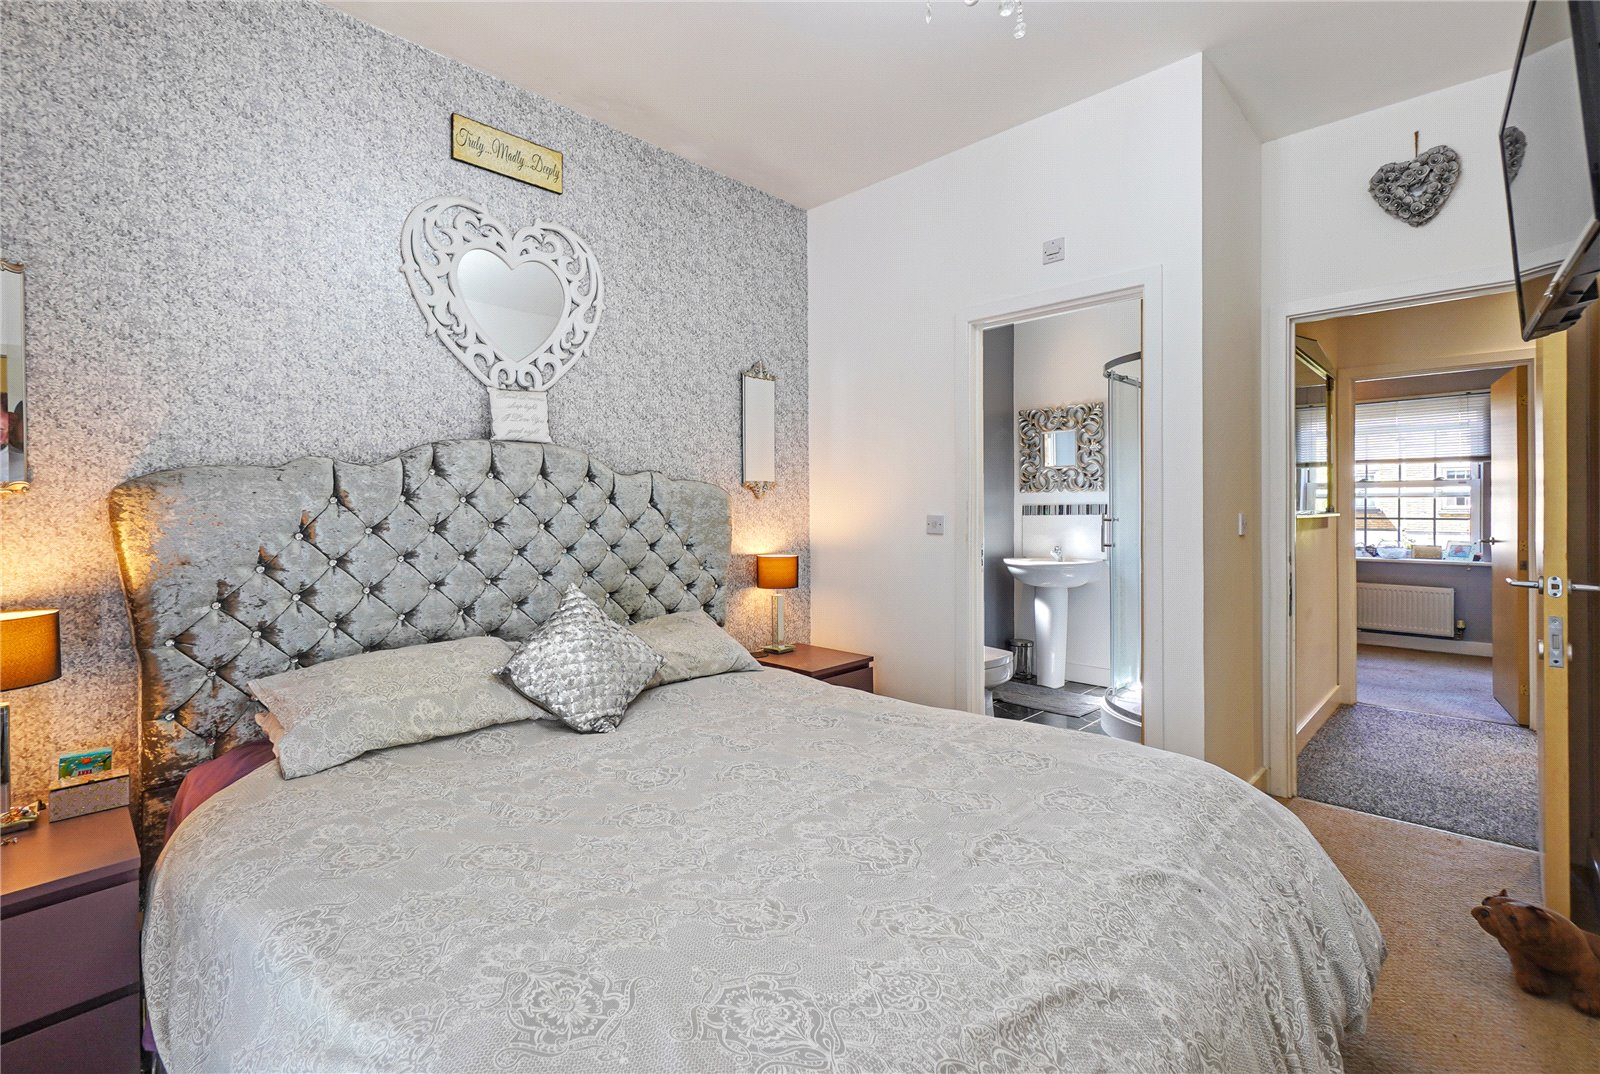 3 bed house for sale in Coriander Drive, Maidstone 10